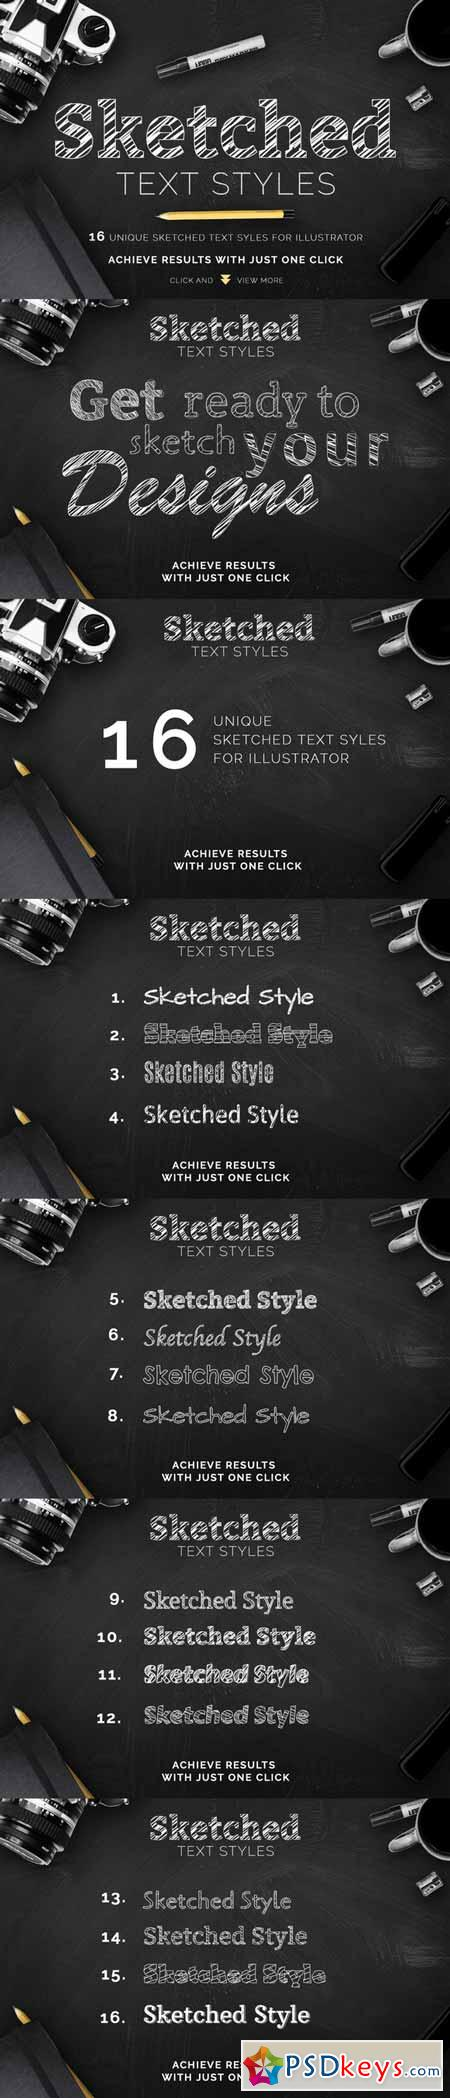 Sketched Text Styles Chalkboard Efx 292443